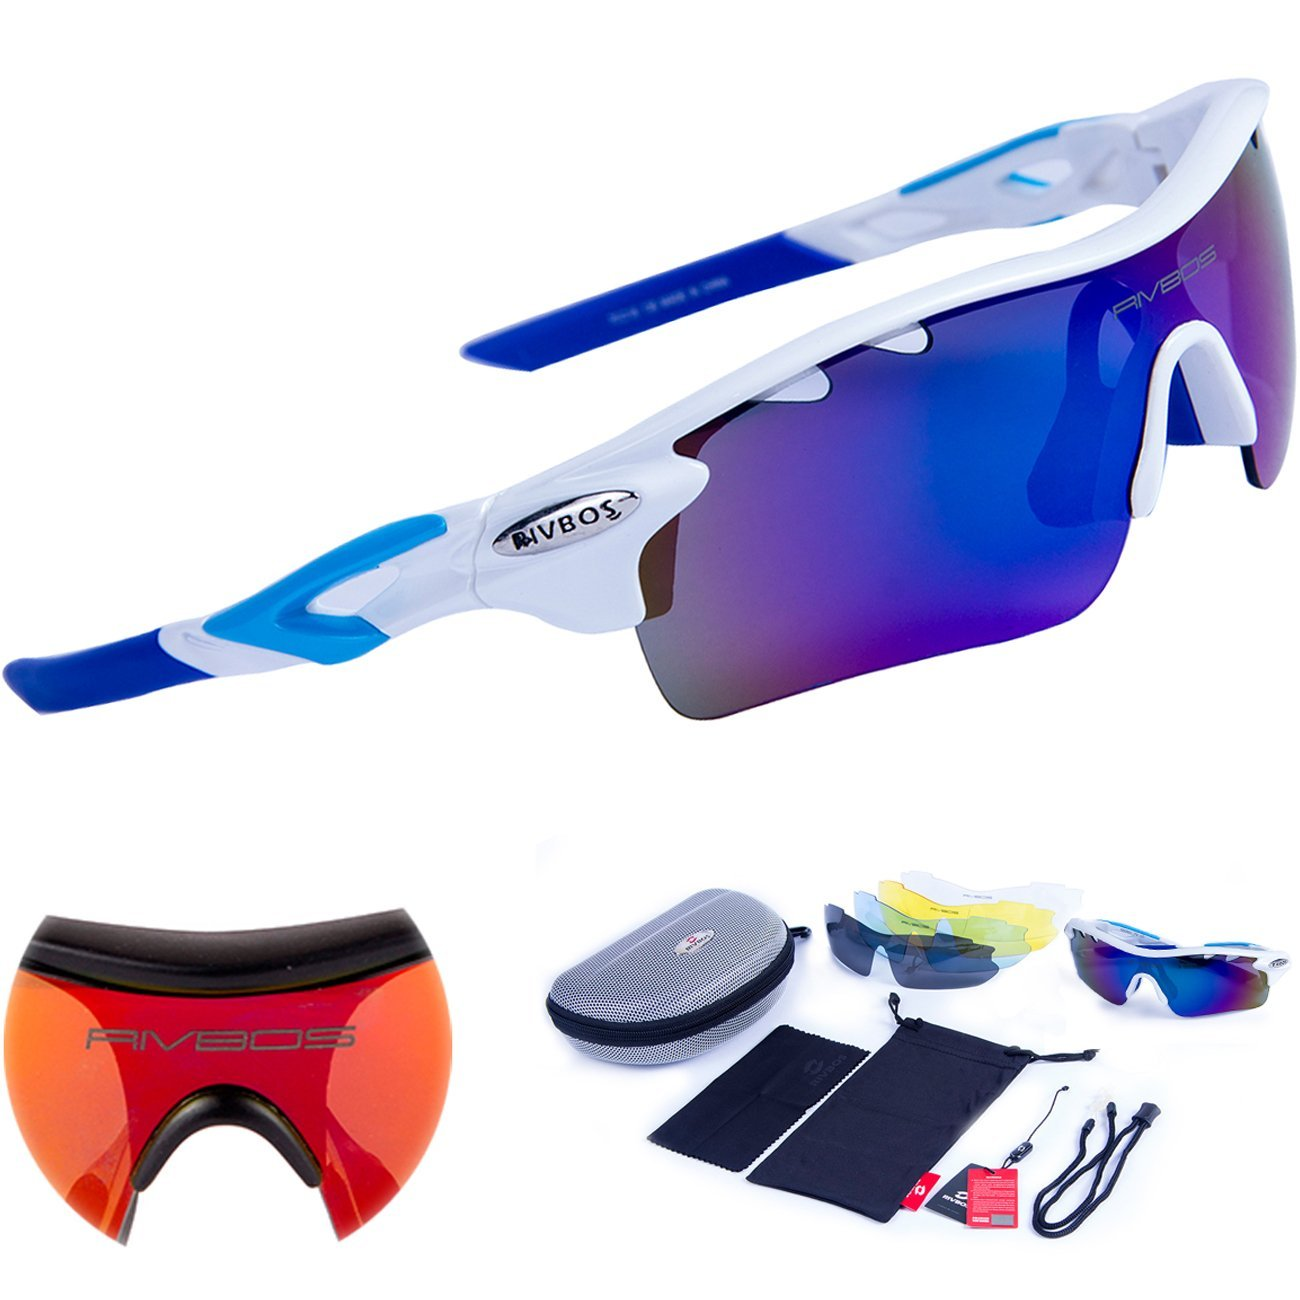 RIVBOS Polarized sunglasses with interchangeable lenses